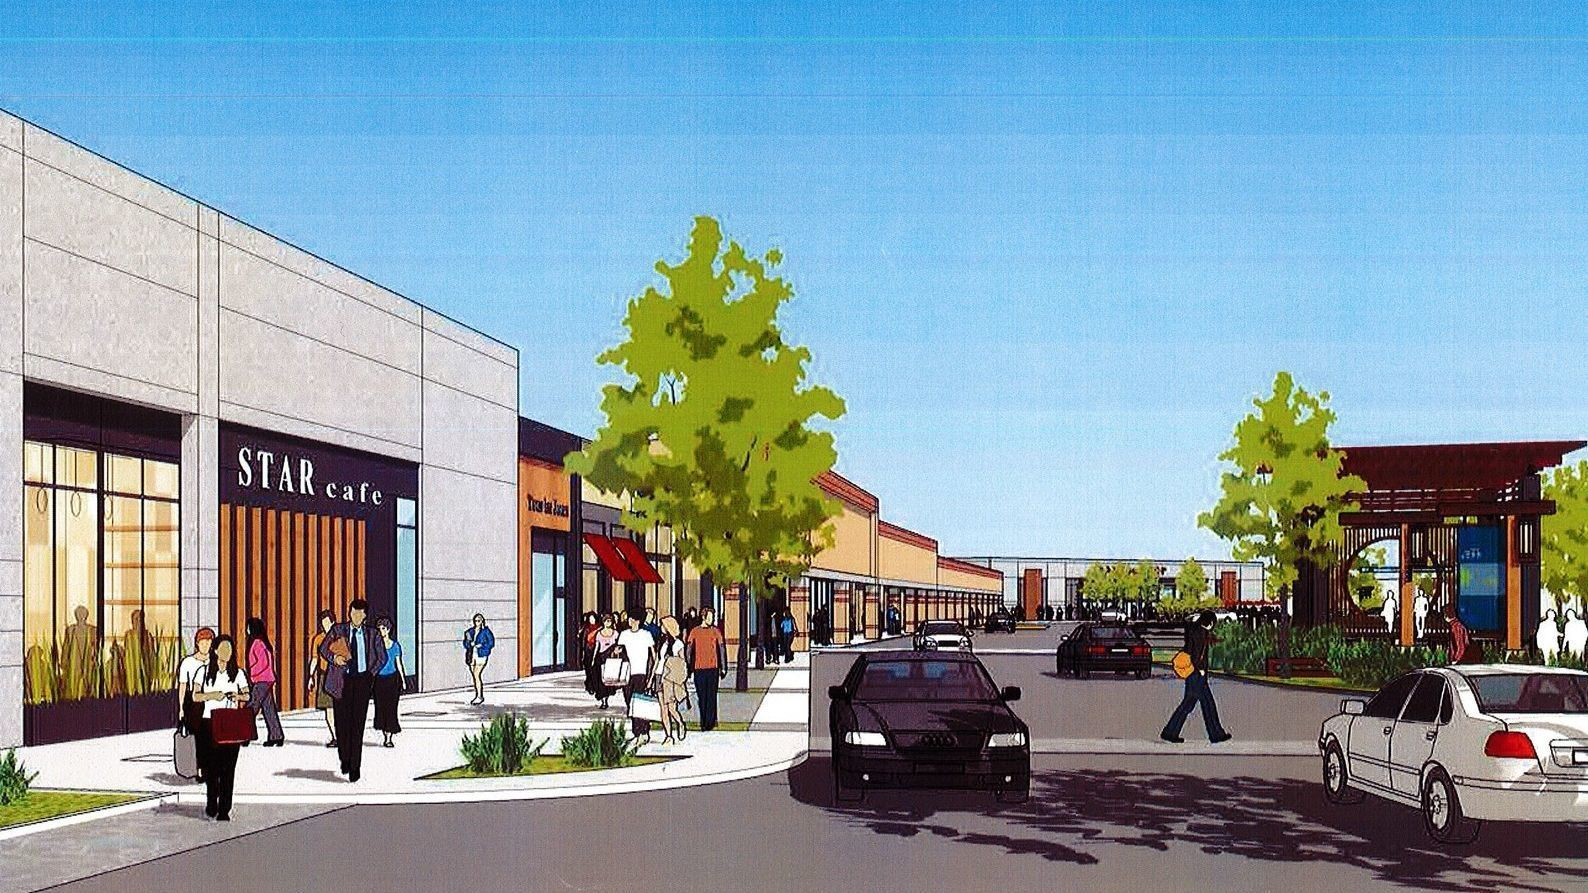 Aurora to vote on sales tax deal for new Pacifica Square shopping center that could include up to $4 million in rebates